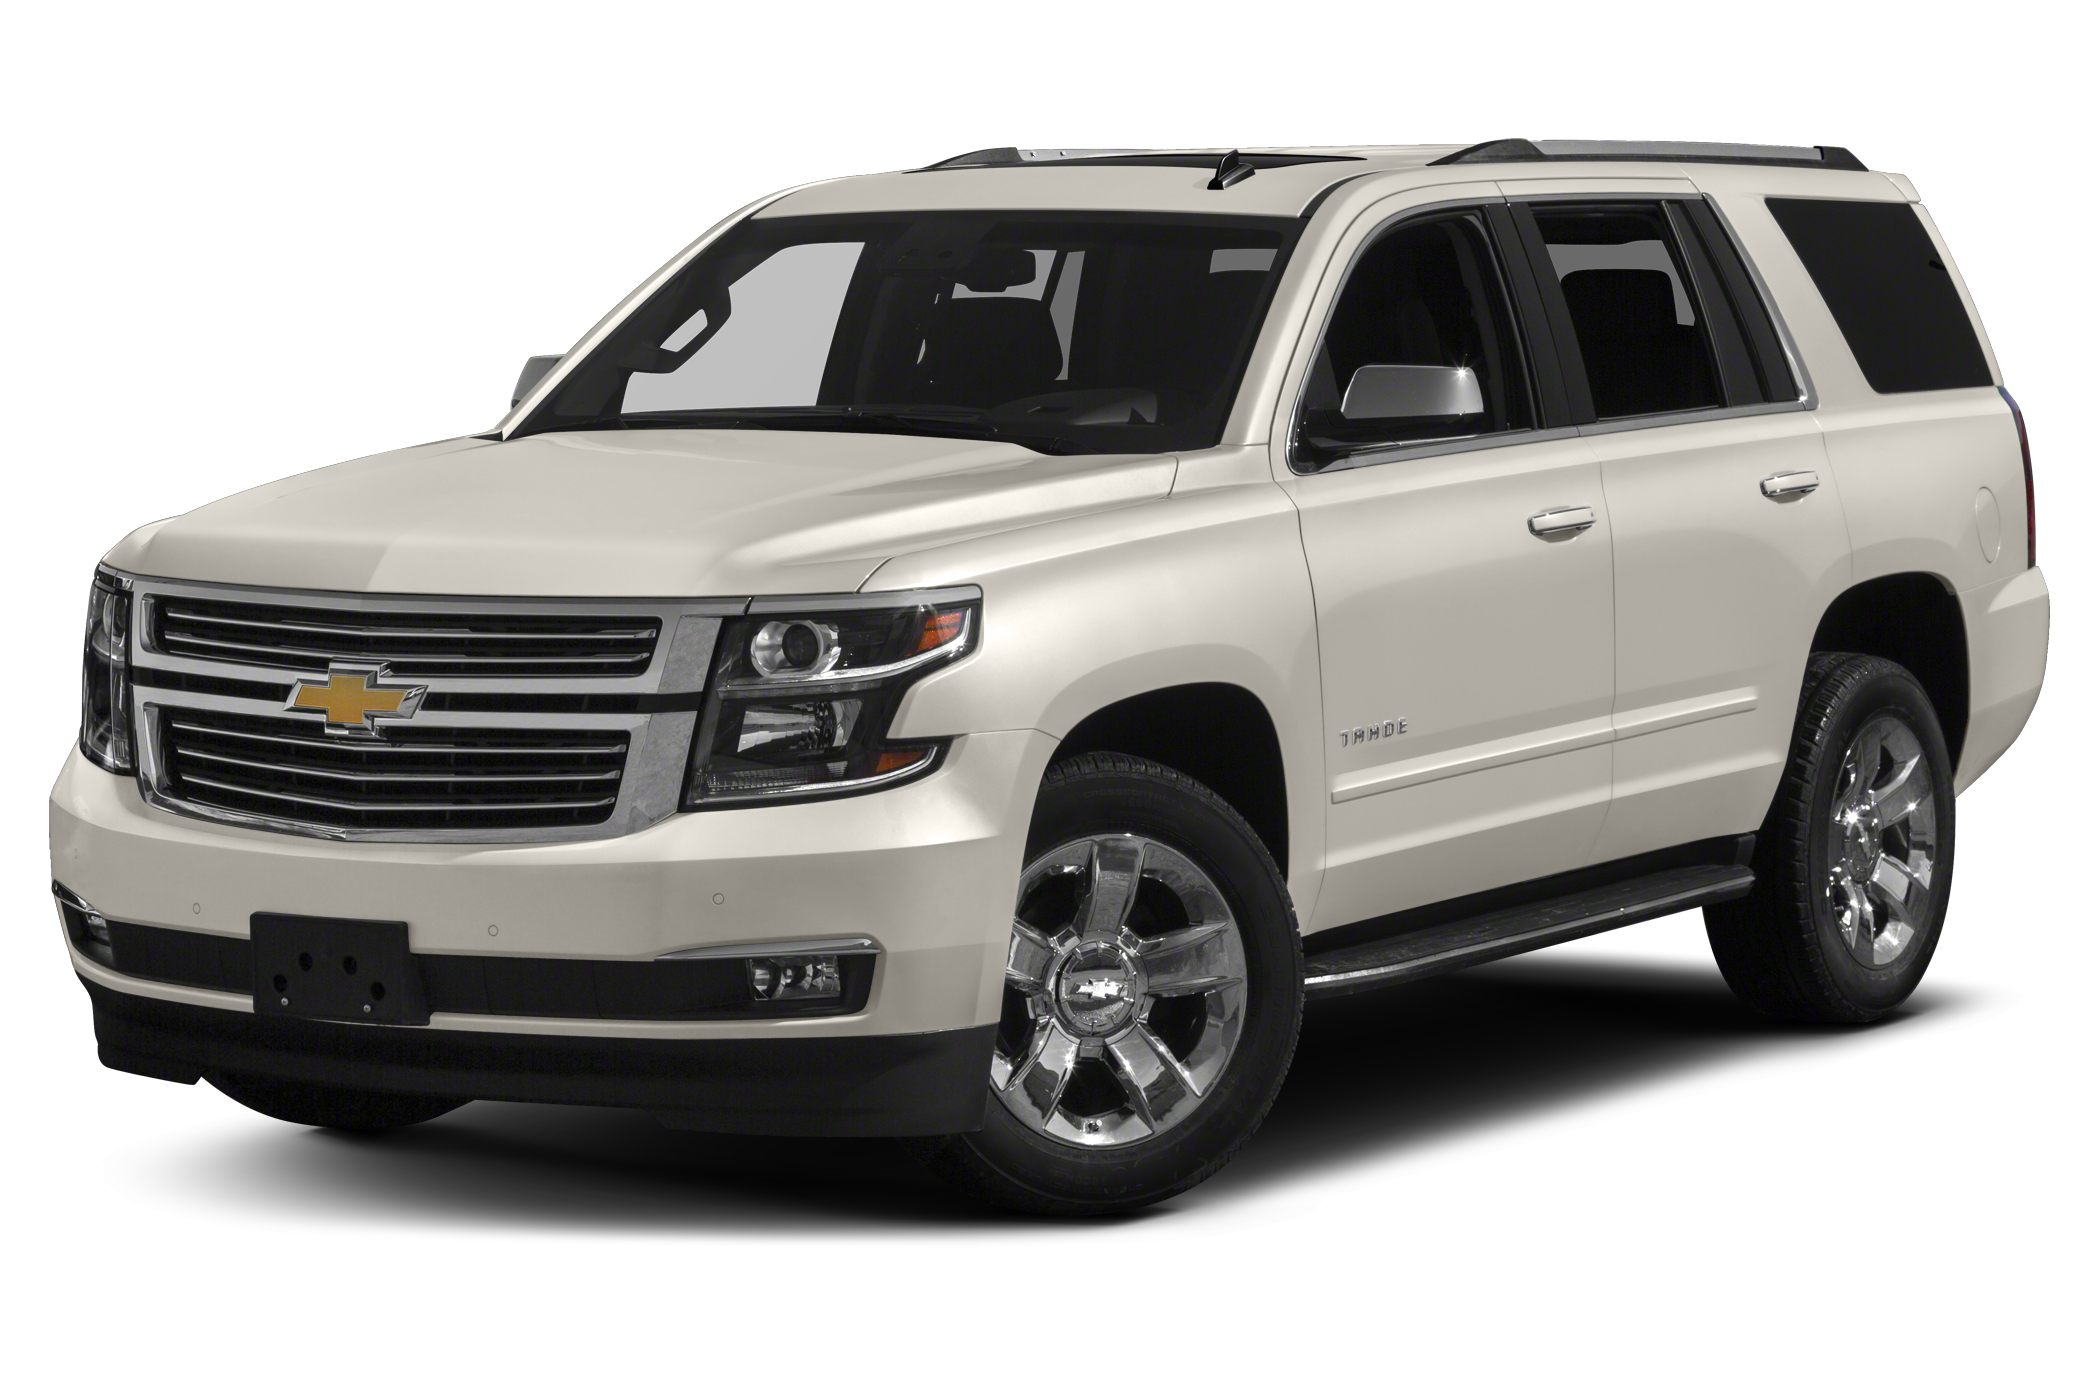 2017 Chevrolet Tahoe Premier 4x4 Pricing and Options